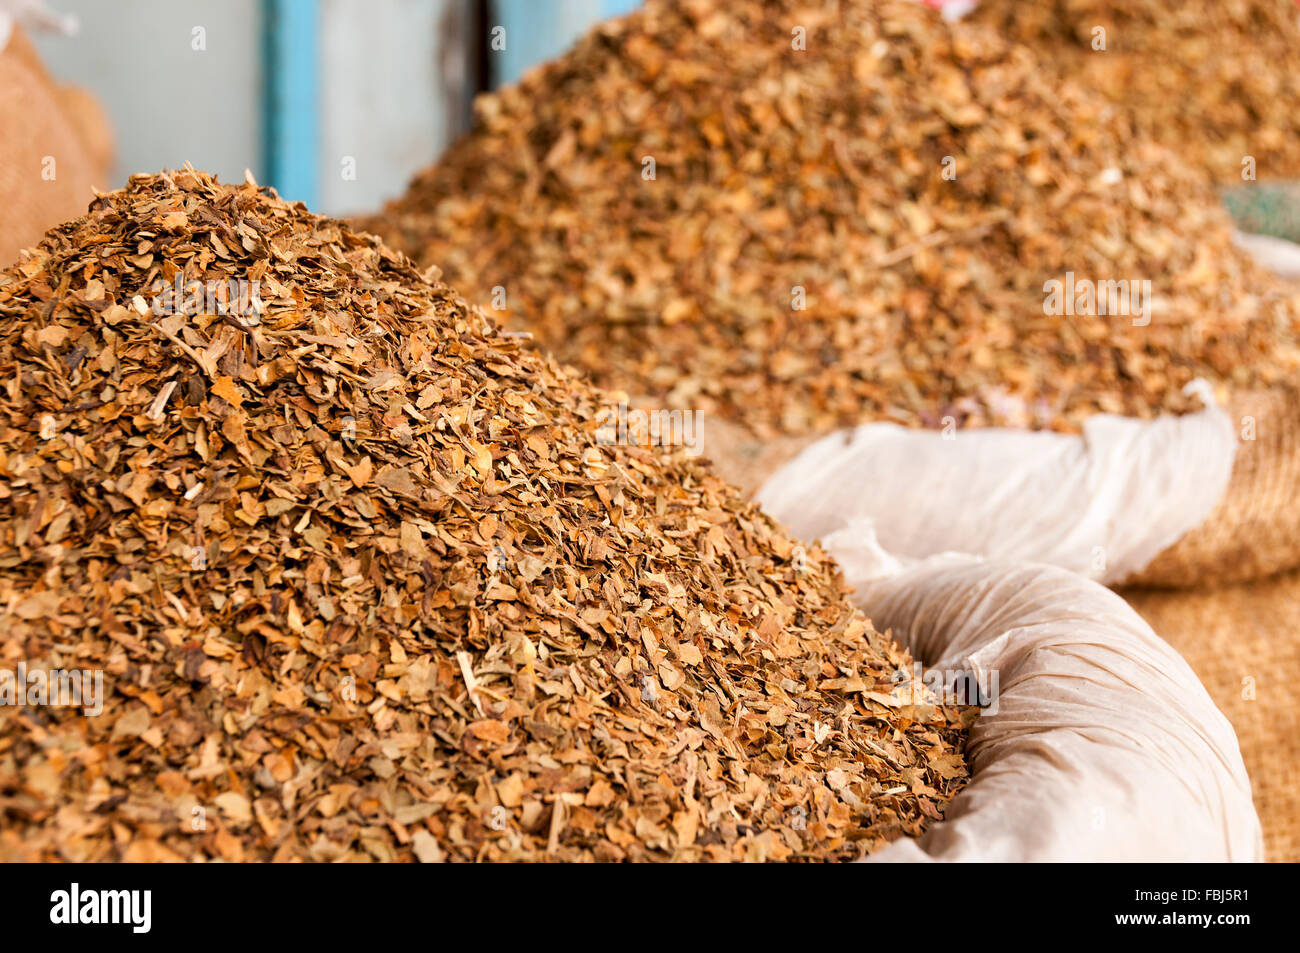 Dried tobacco leaves at the indian market - Stock Image